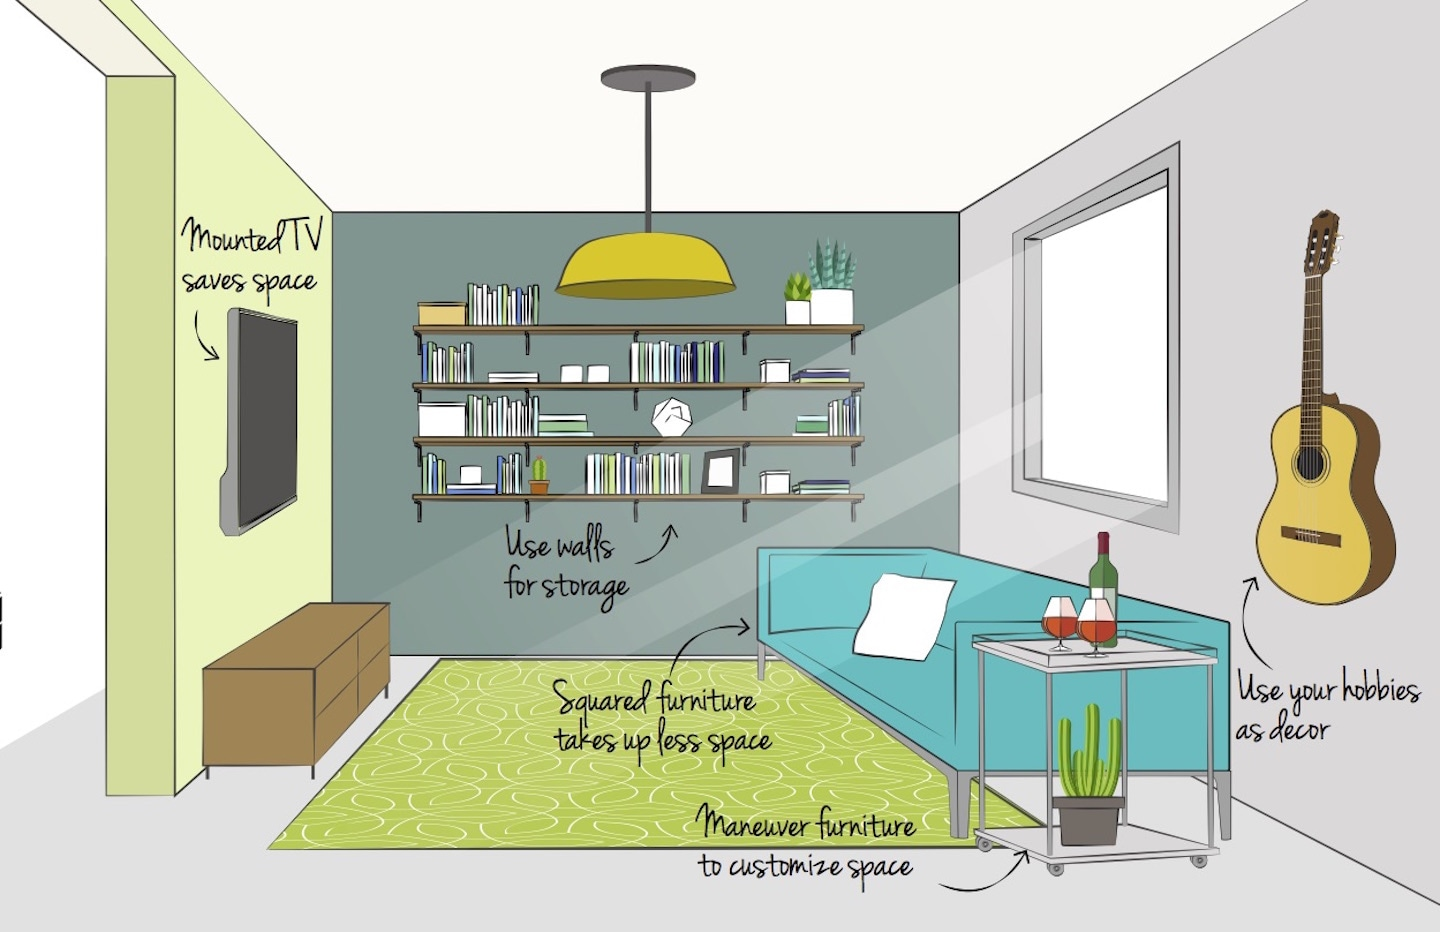 Small living room illustration with design tips included.